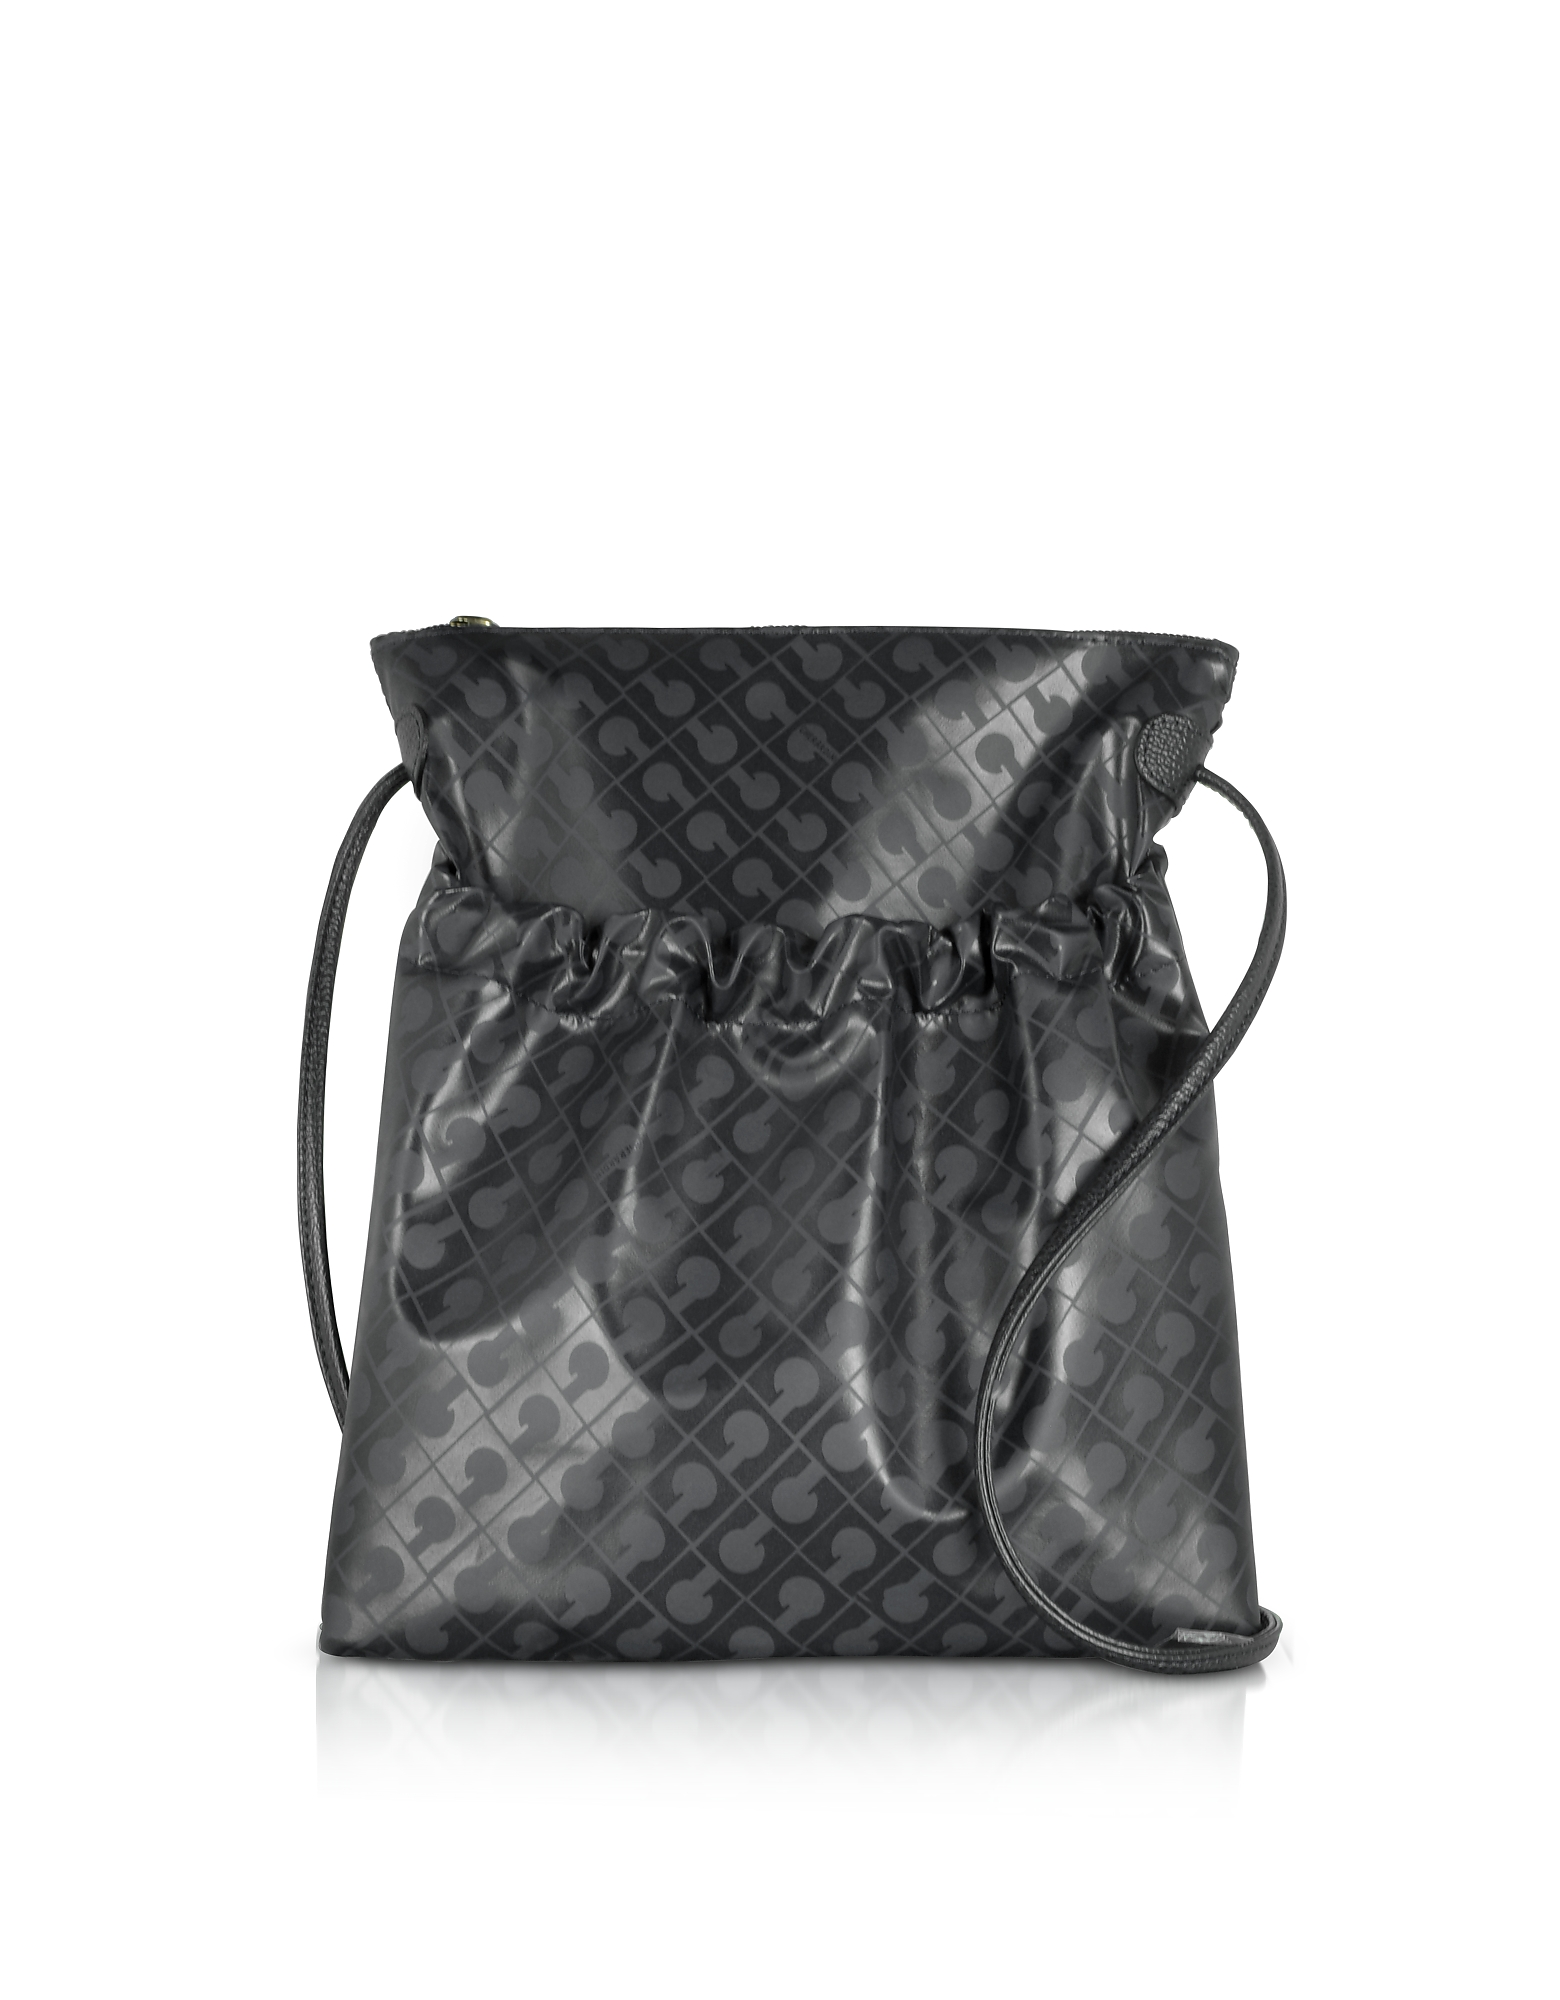 Image of Gherardini Designer Handbags, Signature Coated Canvas and Leather Softy Crossbody Bag